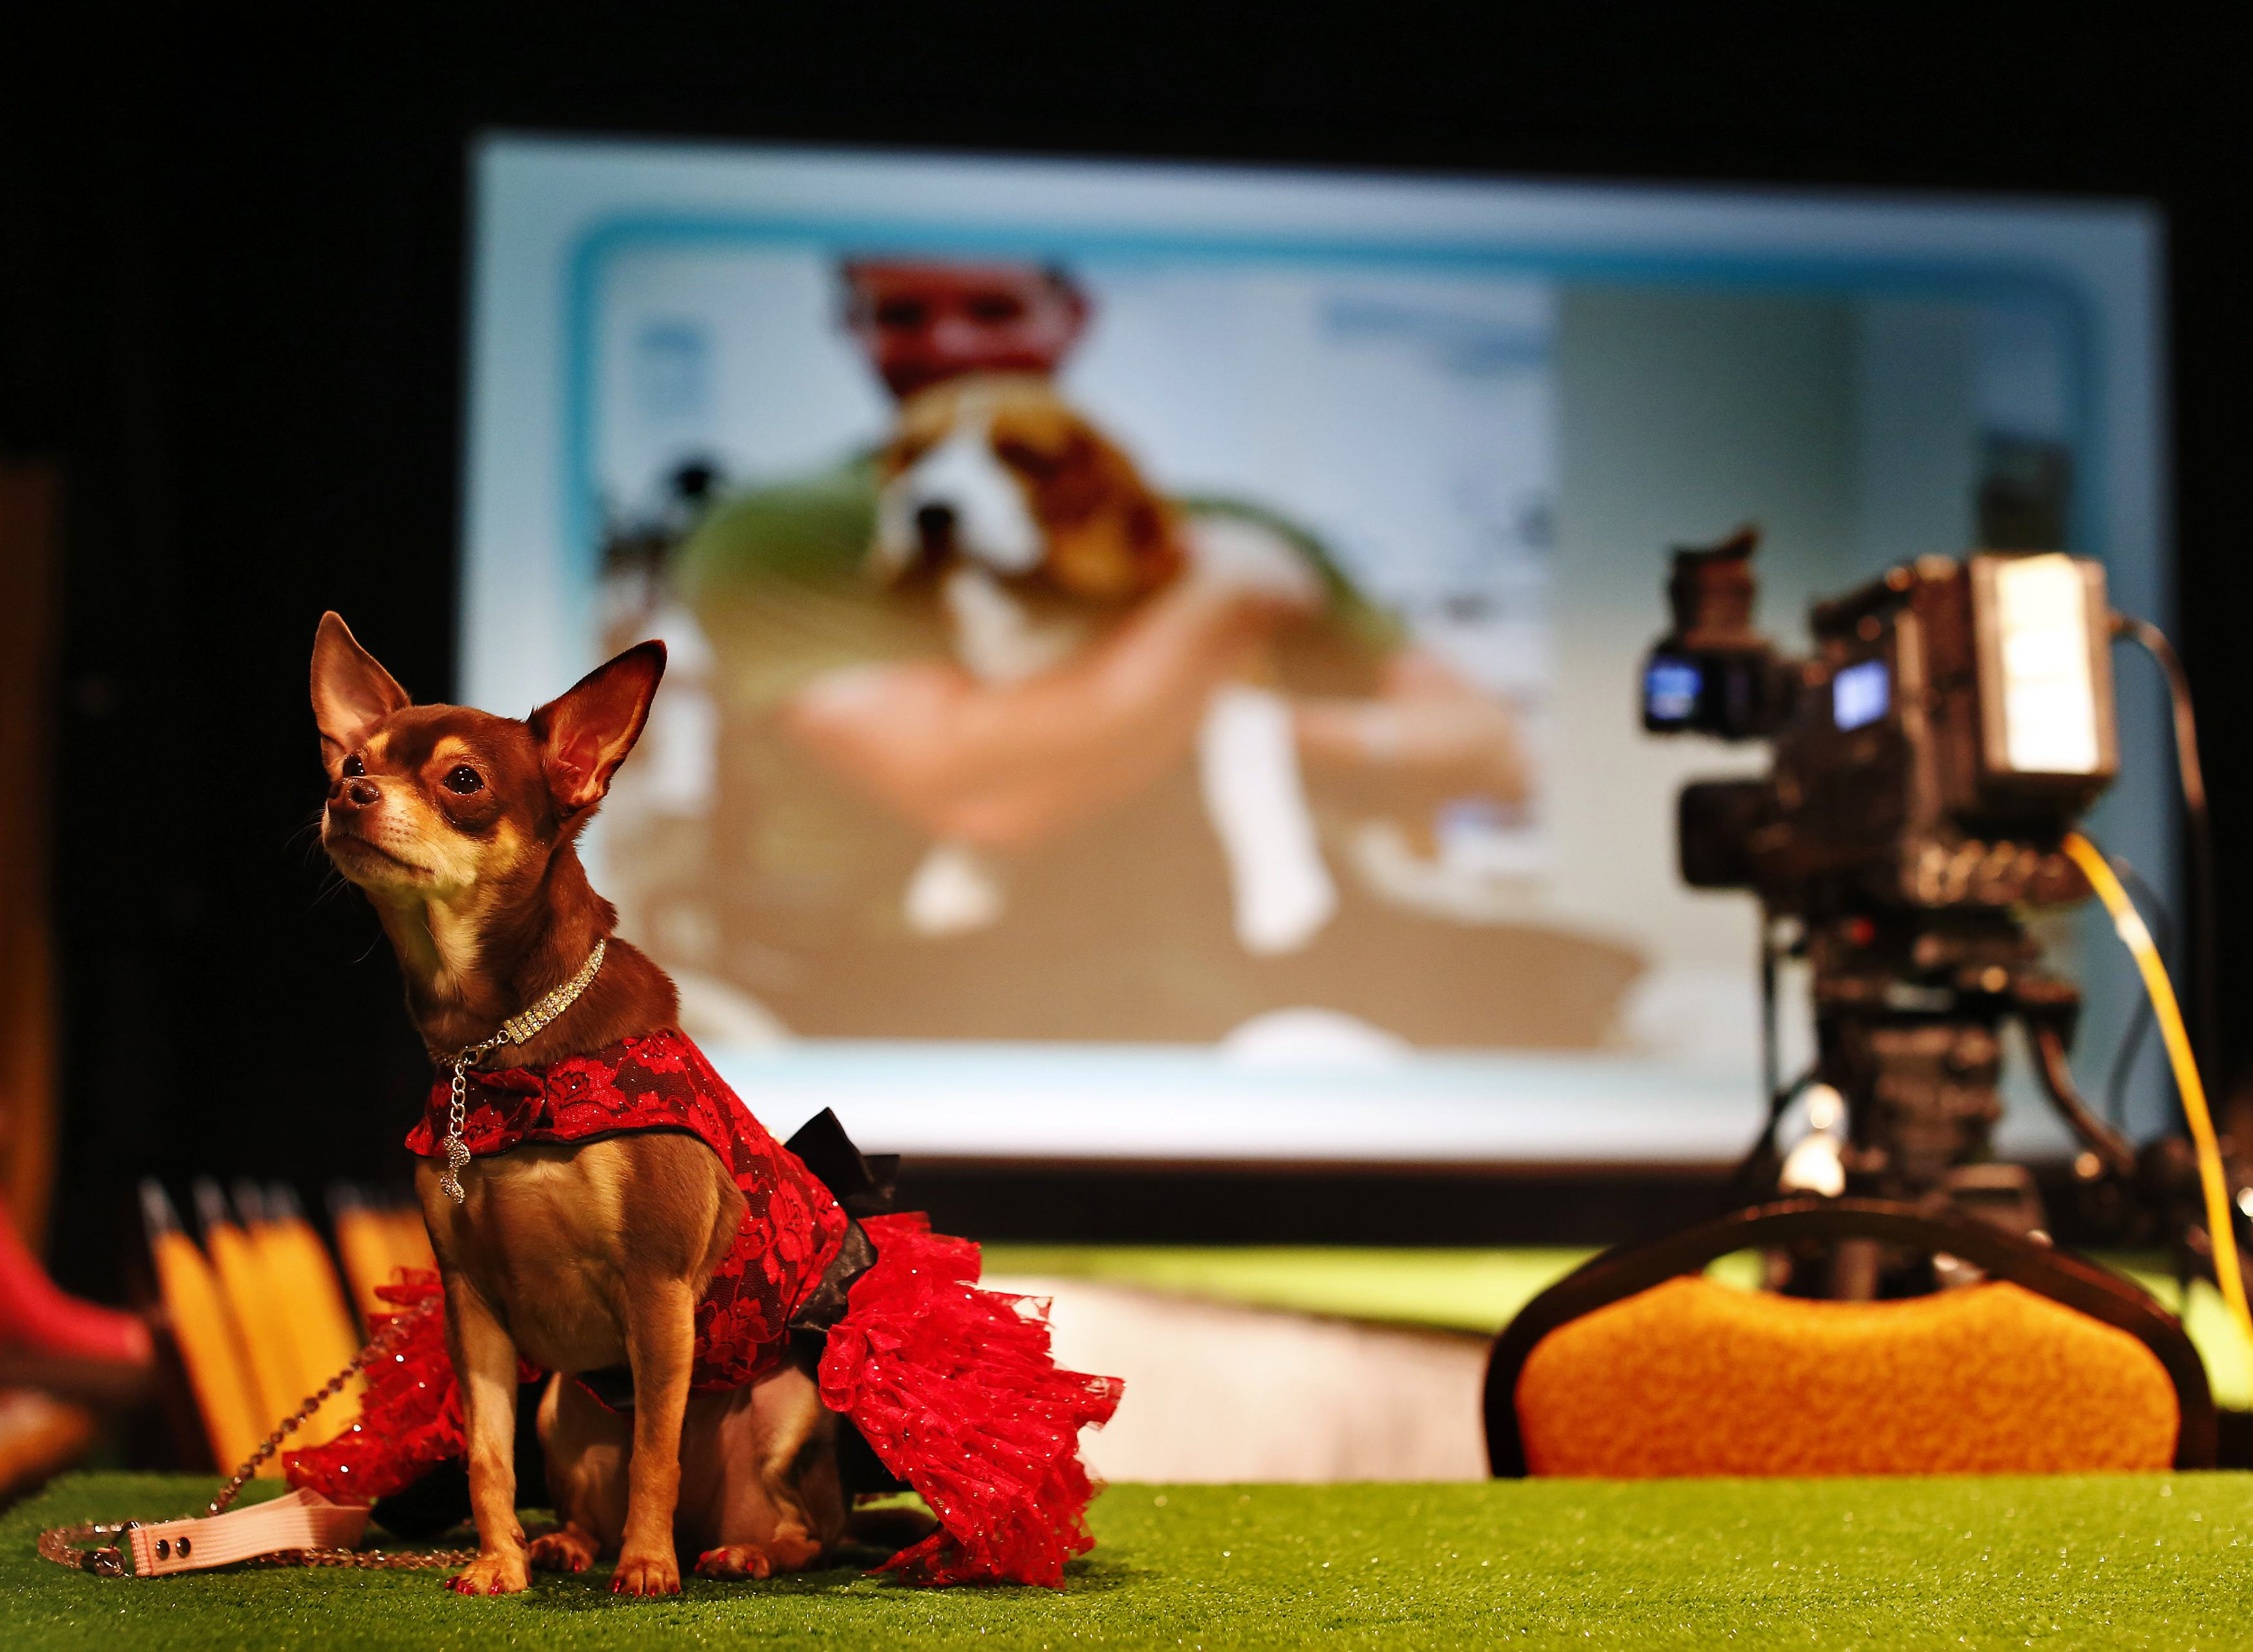 Chai Latte, a Chihuahua breed, sits on the runway before the start of the New Yorkie Runway Doggie Fashion Show in New York. ? Reuters Photo